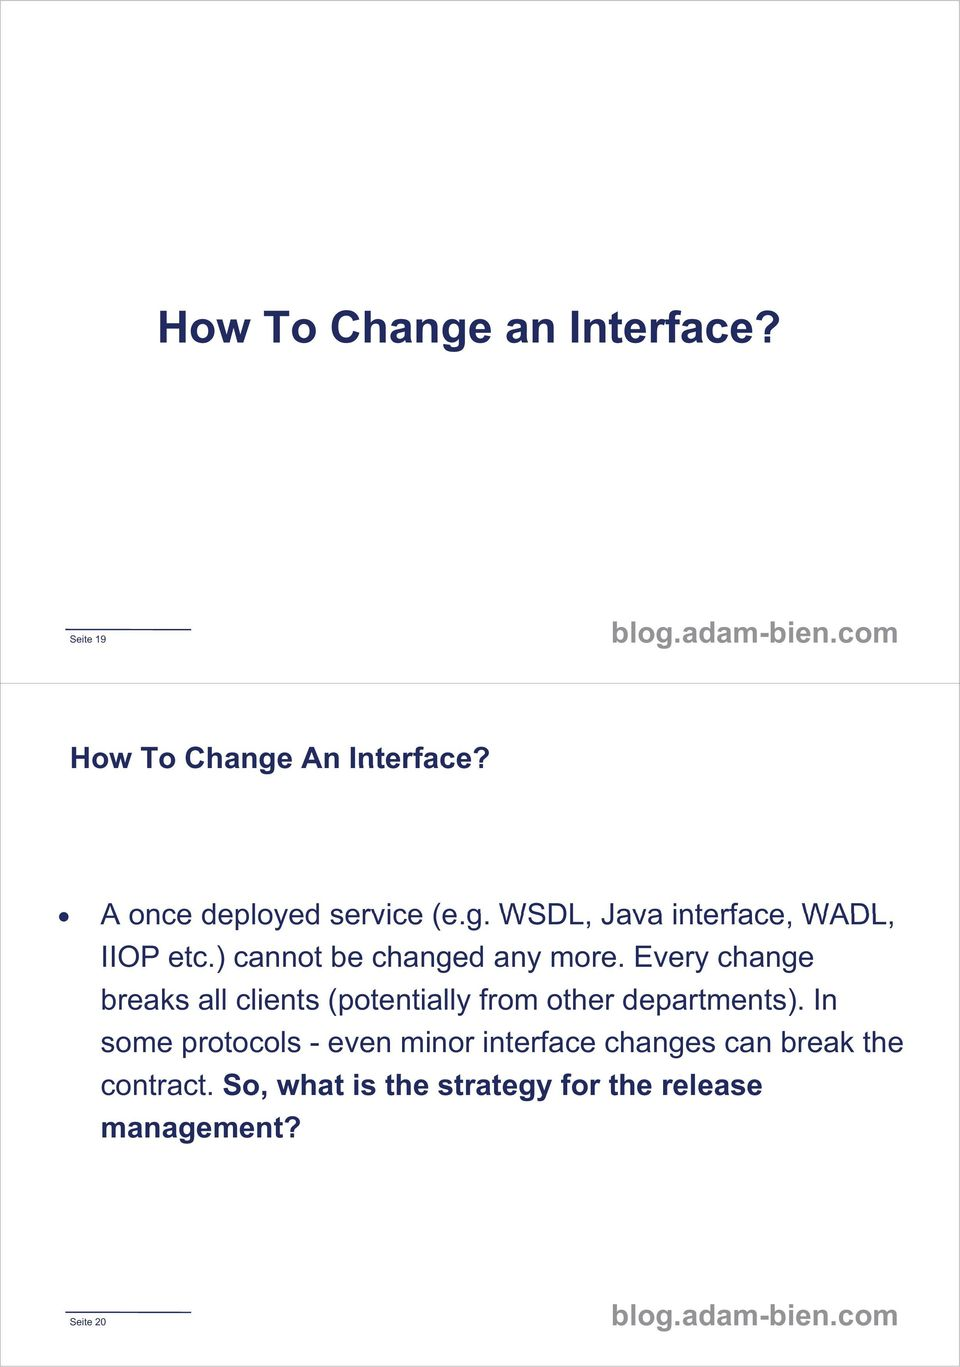 Every change breaks all clients (potentially from other departments).